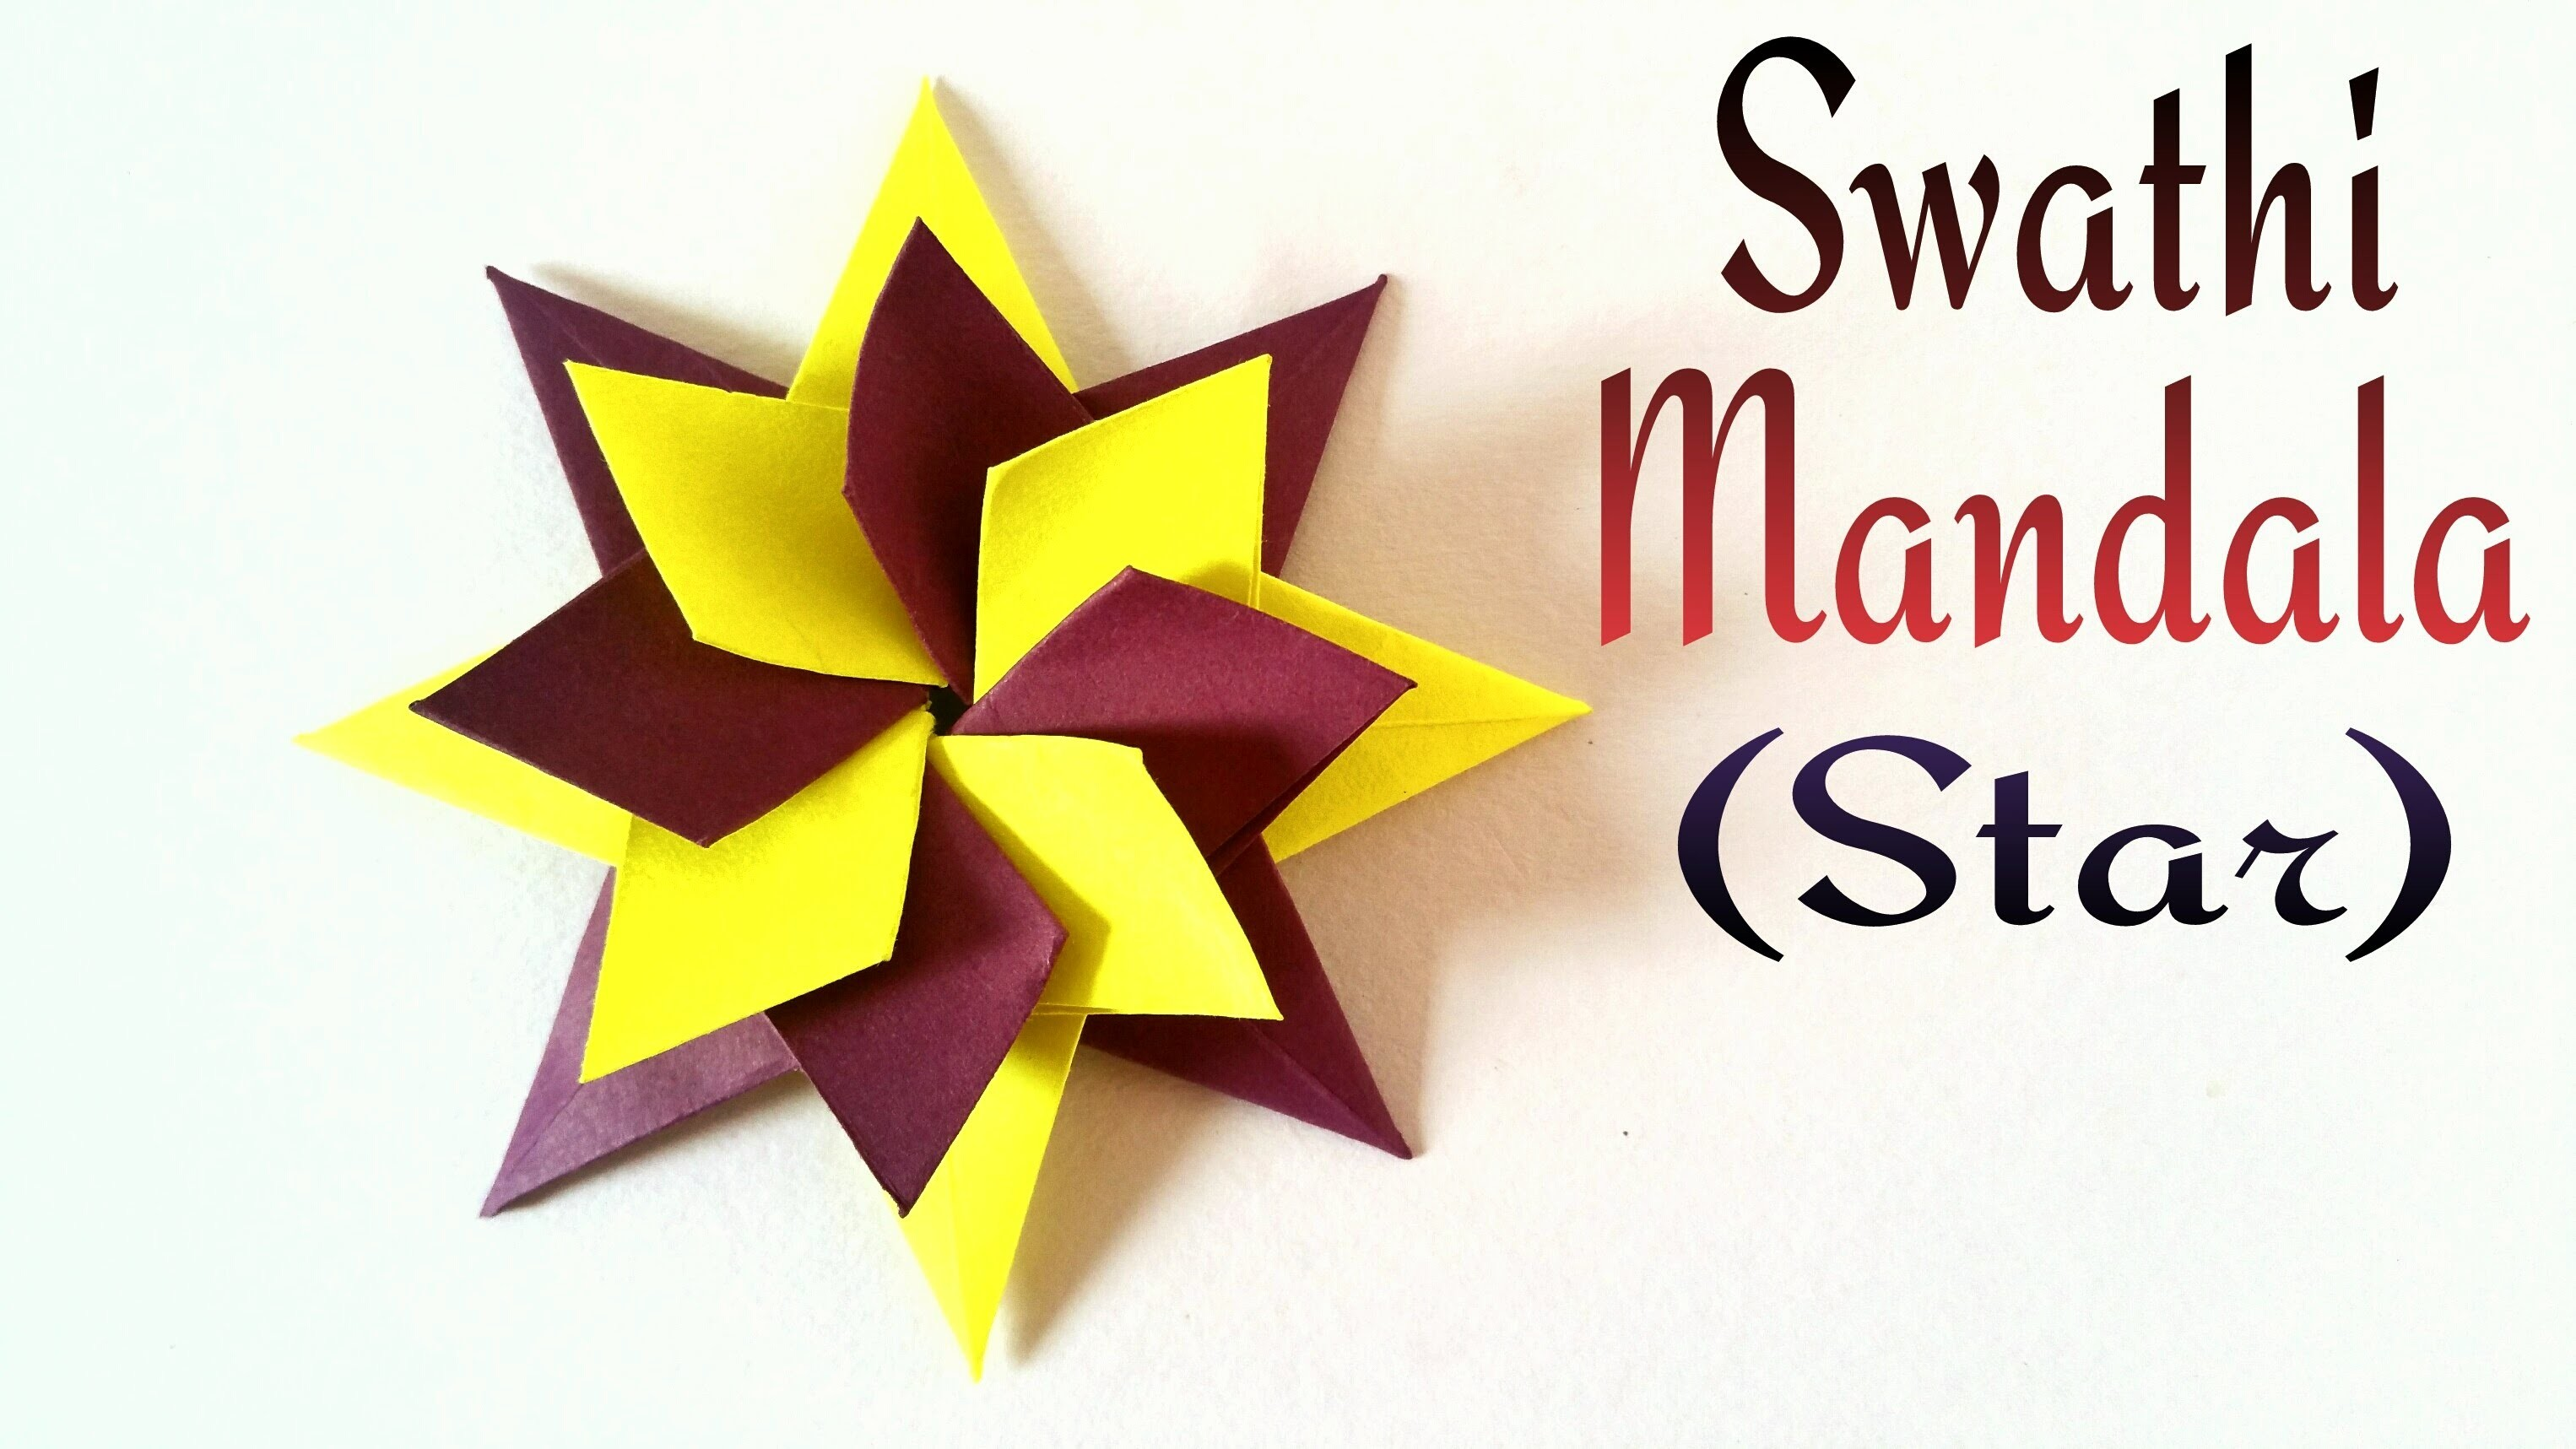 How to make a Modular star (Swathi Mandala ) - Decorative Origami tutorial